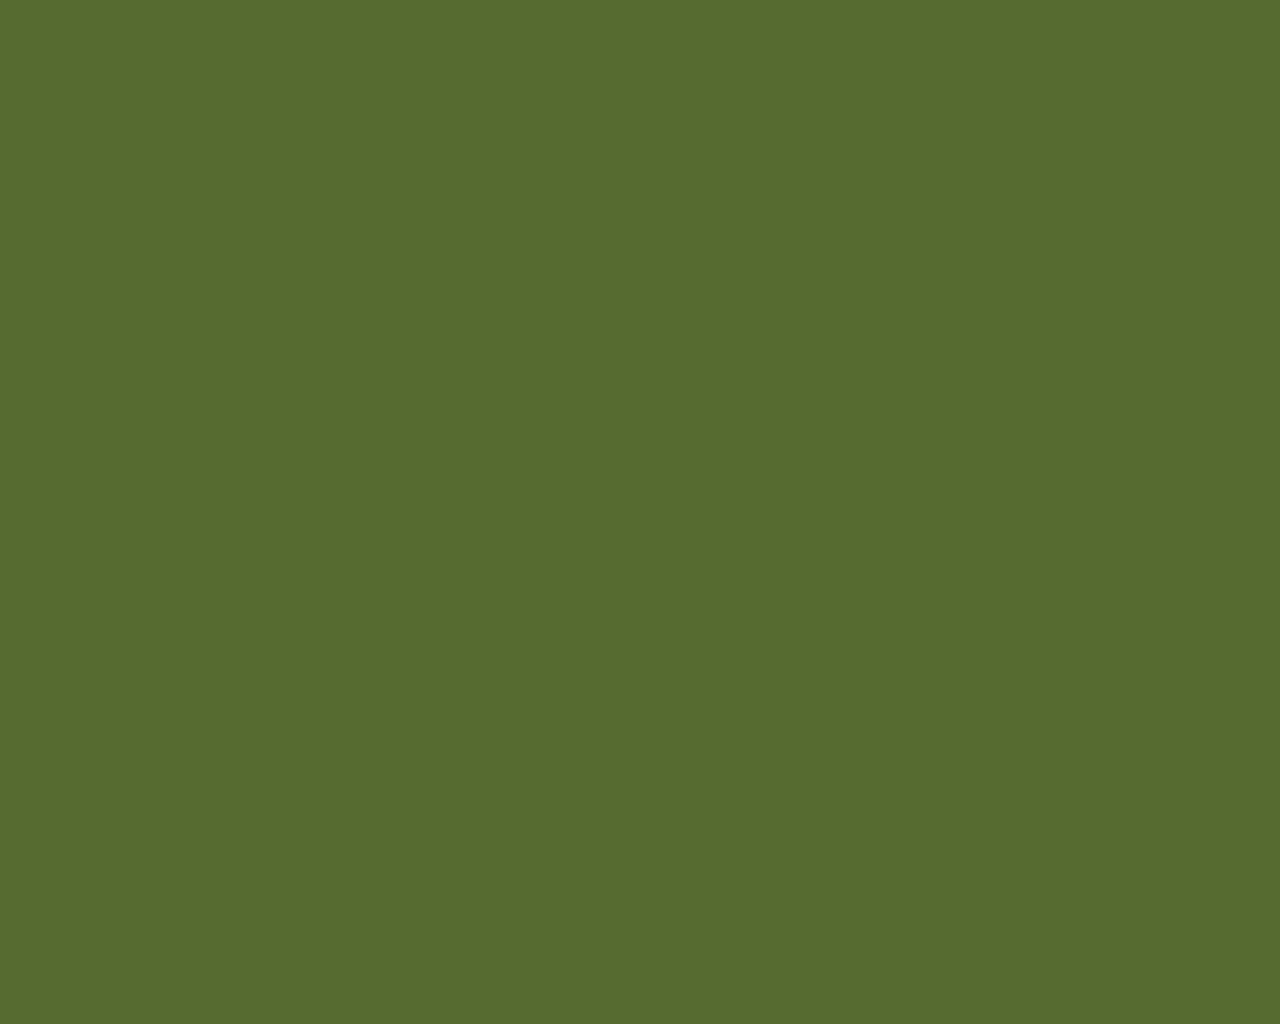 1280x1024 Dark Olive Green Solid Color Background